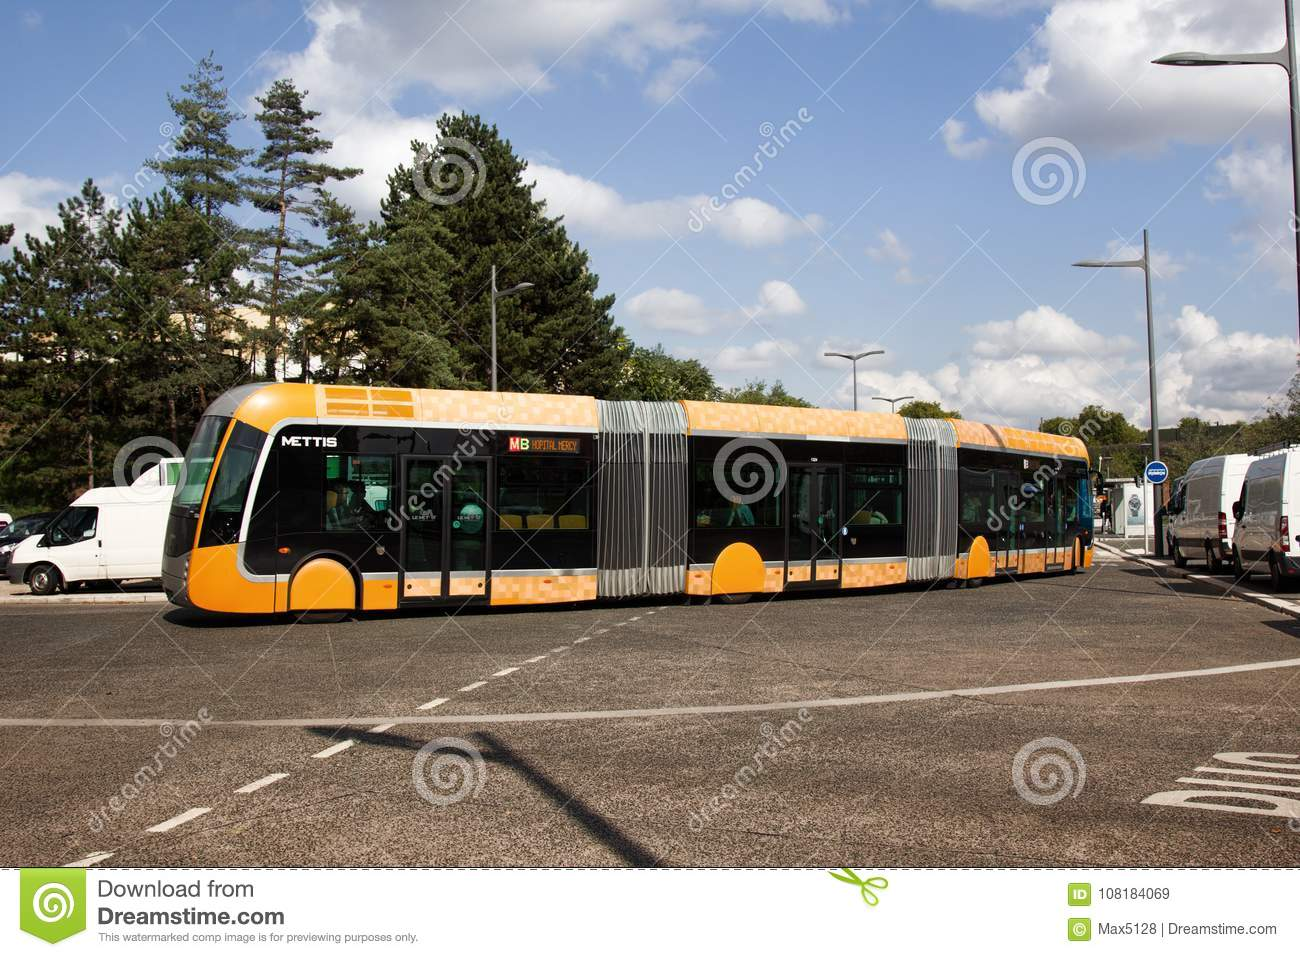 Bus Metz Metrobus Bi Articulated Buses Multi Section Articulated Buses